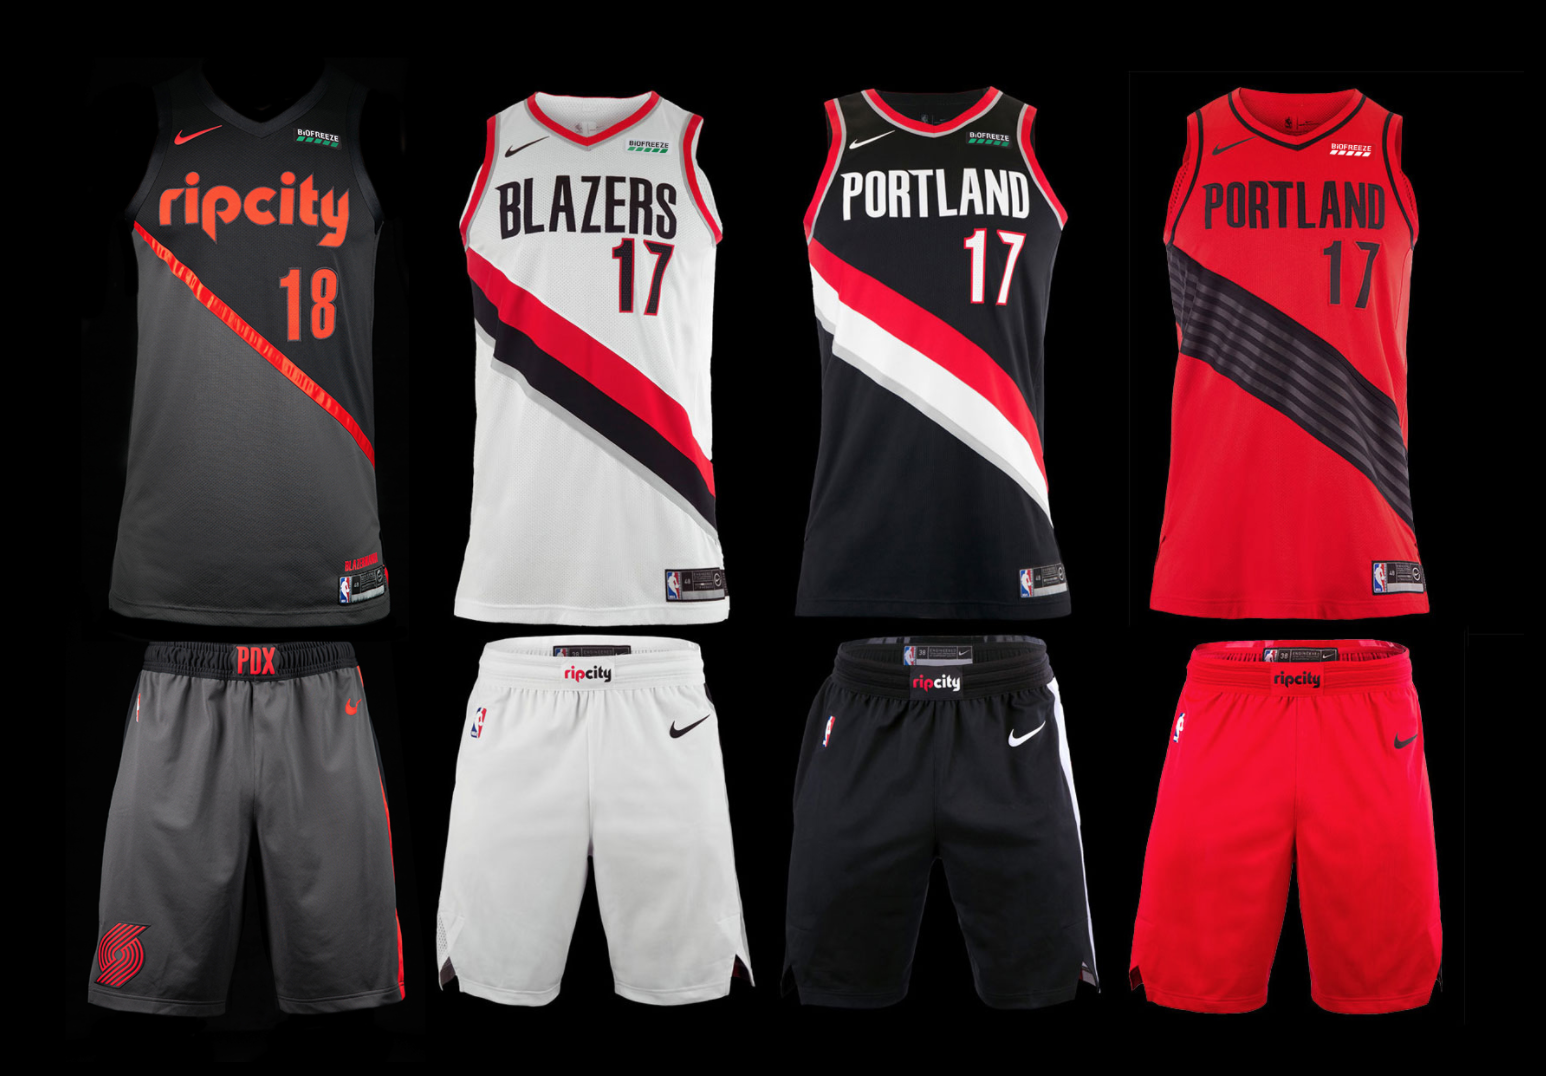 reputable site 277a8 a37c5 Portland Trail Blazers unveil new Rip City uniform ...